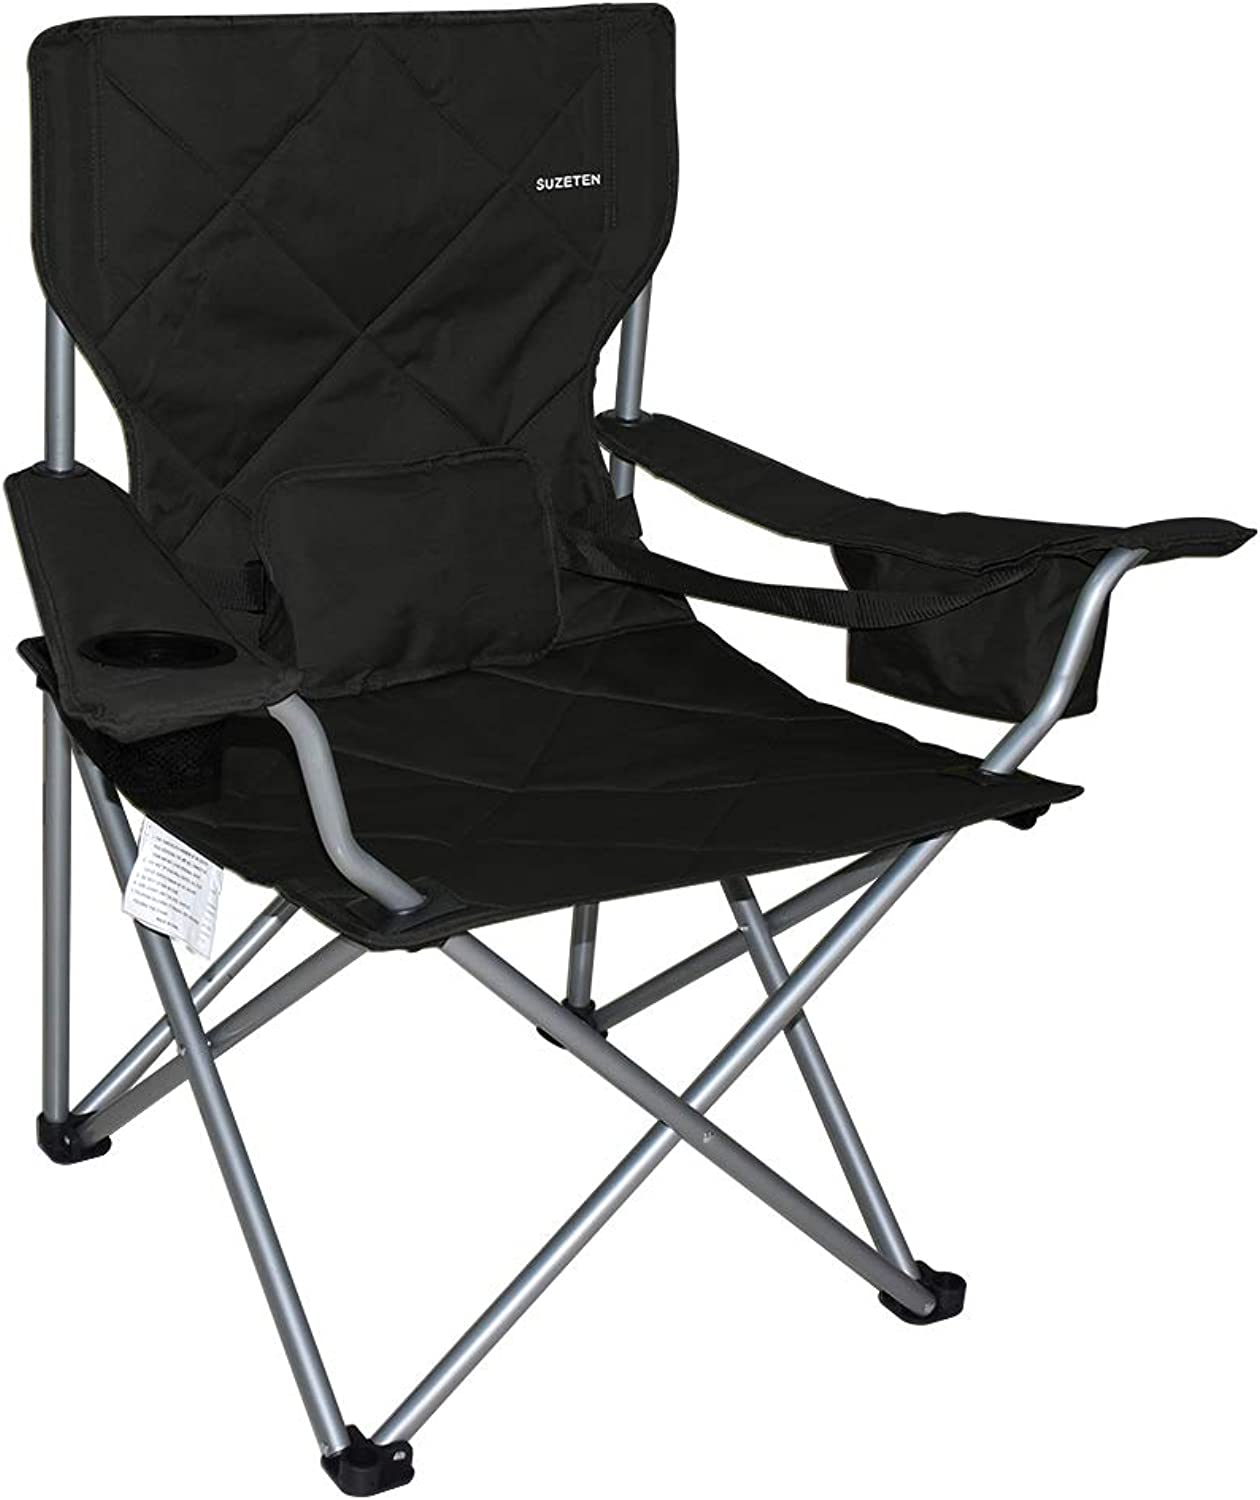 Suzeten Oversized Folding Camping Chair Quad Arm Chair with Heavy Duty Lumbar Back Support, Cooler Cup Holder, Back Mesh Pocket, Shoulder Strap Carrying Bag, Supports 500 lbs, Black